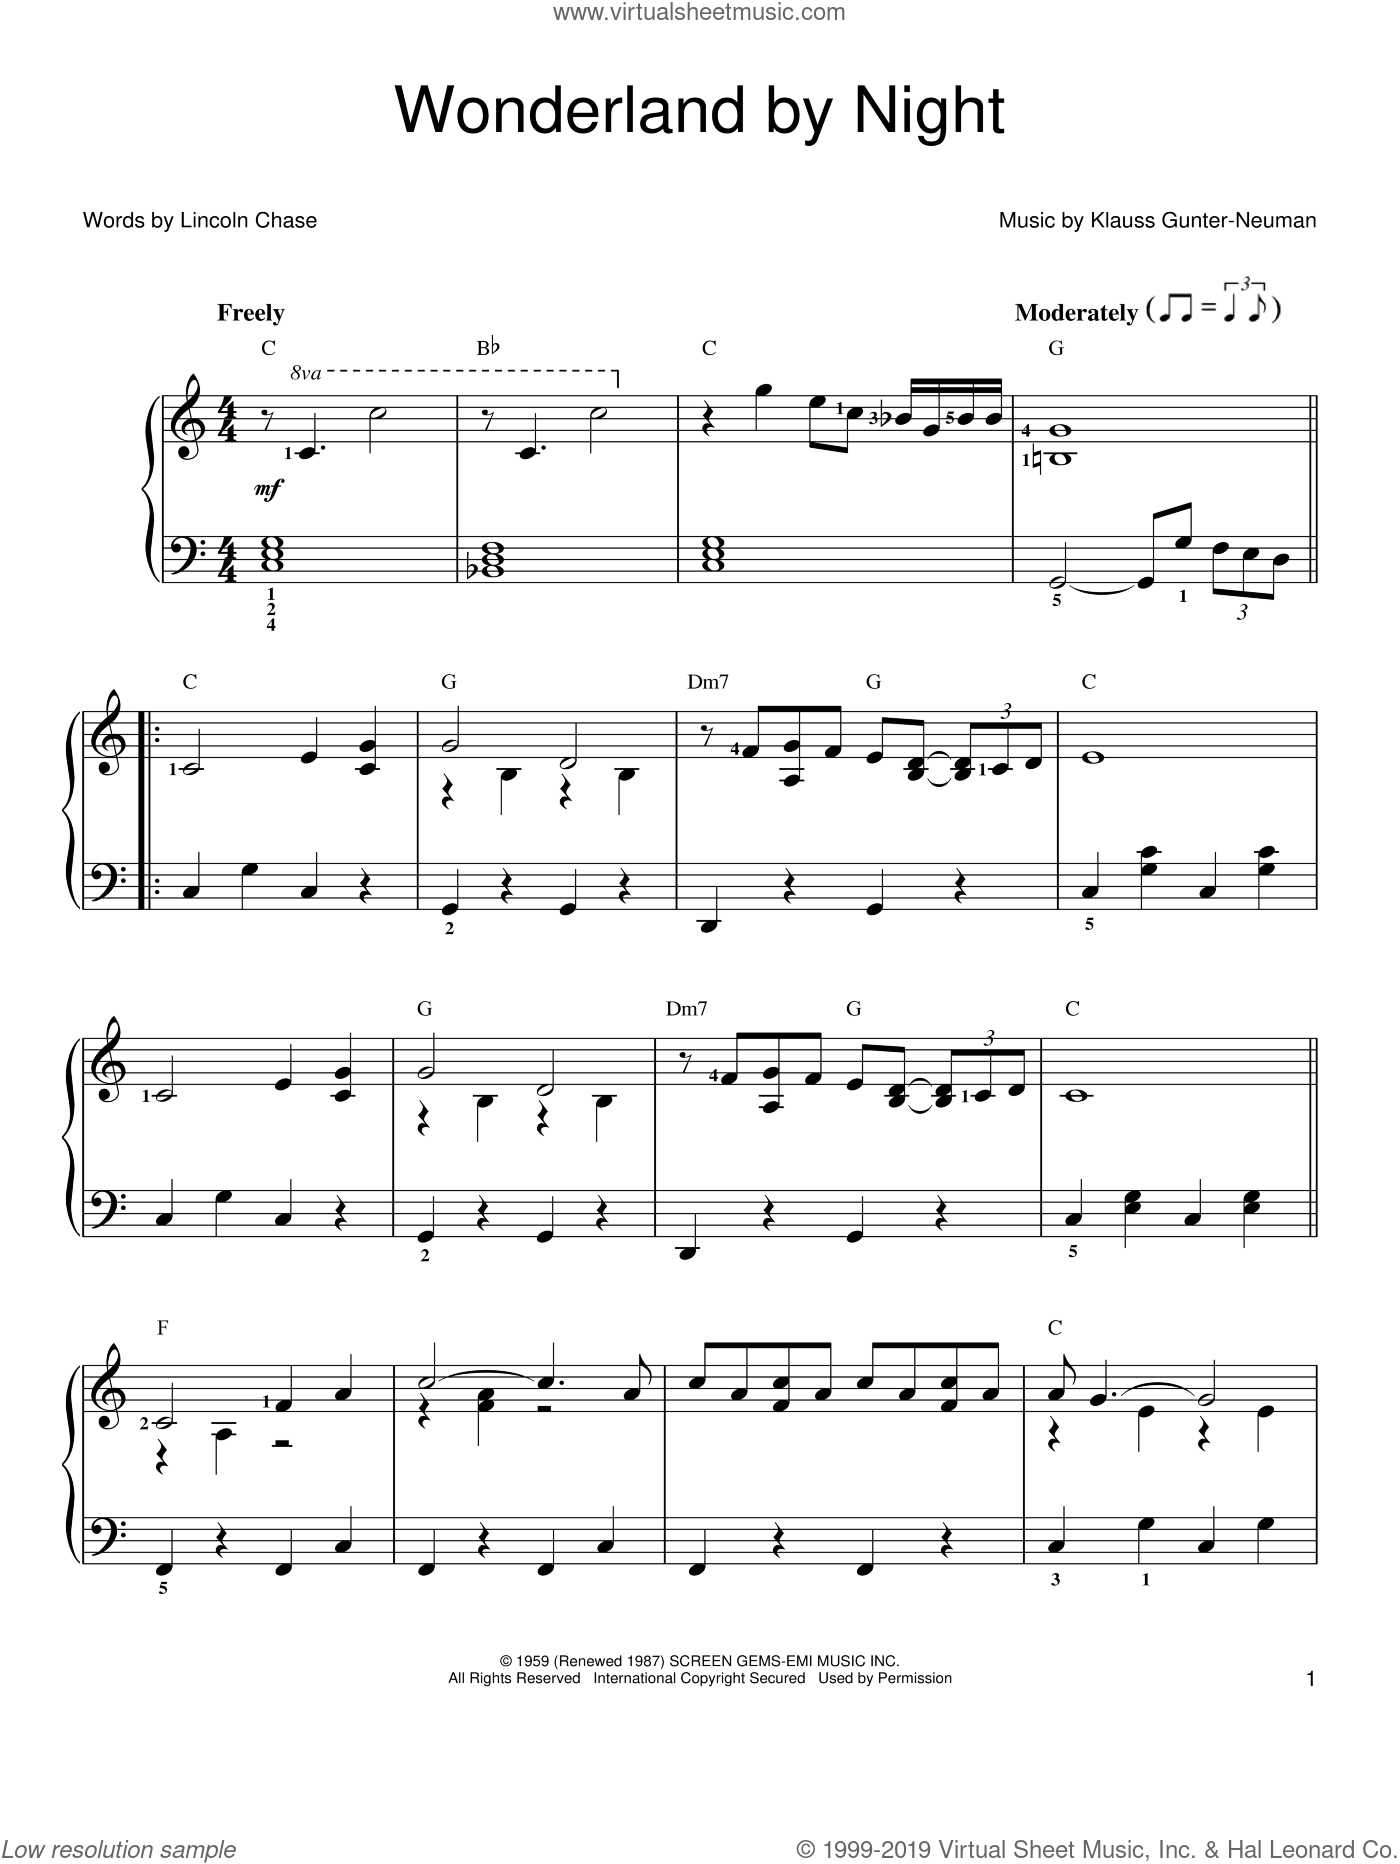 Wonderland By Night sheet music for piano solo by Bert Kaempfert, Klauss Gunter-Neuman and Lincoln Chase, easy skill level